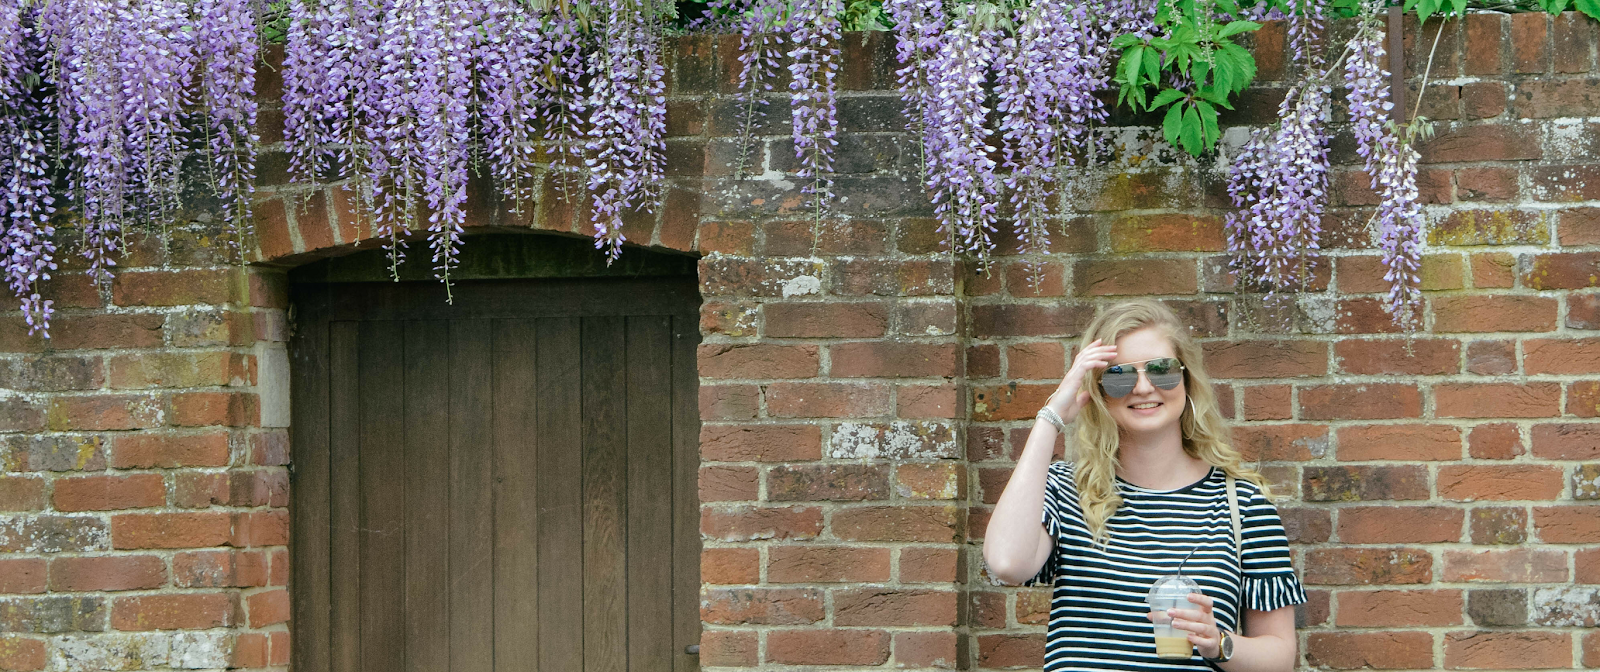 Things To Do In Summer in Hampshire, Hampshire Bloggers